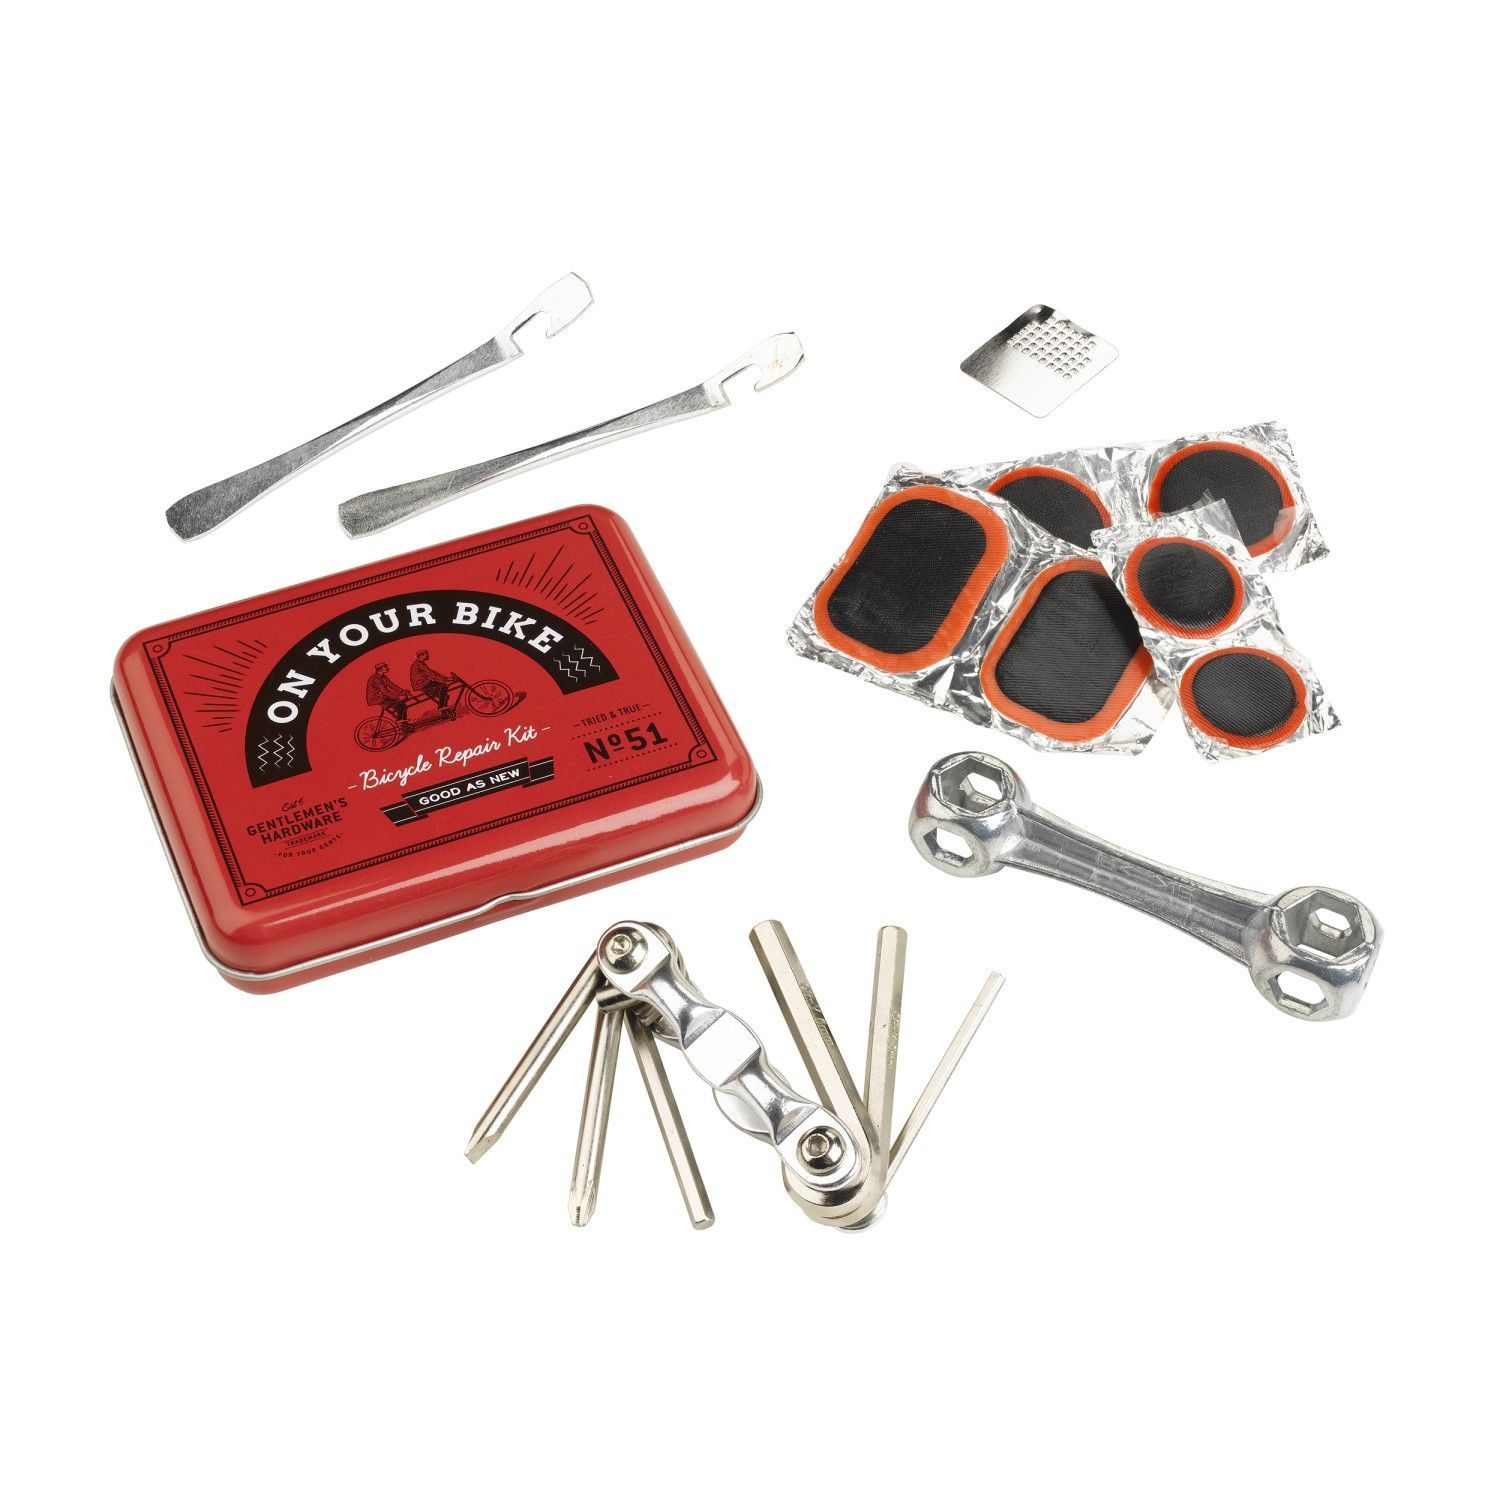 Gentlemens Hardware Bike Repair Kit